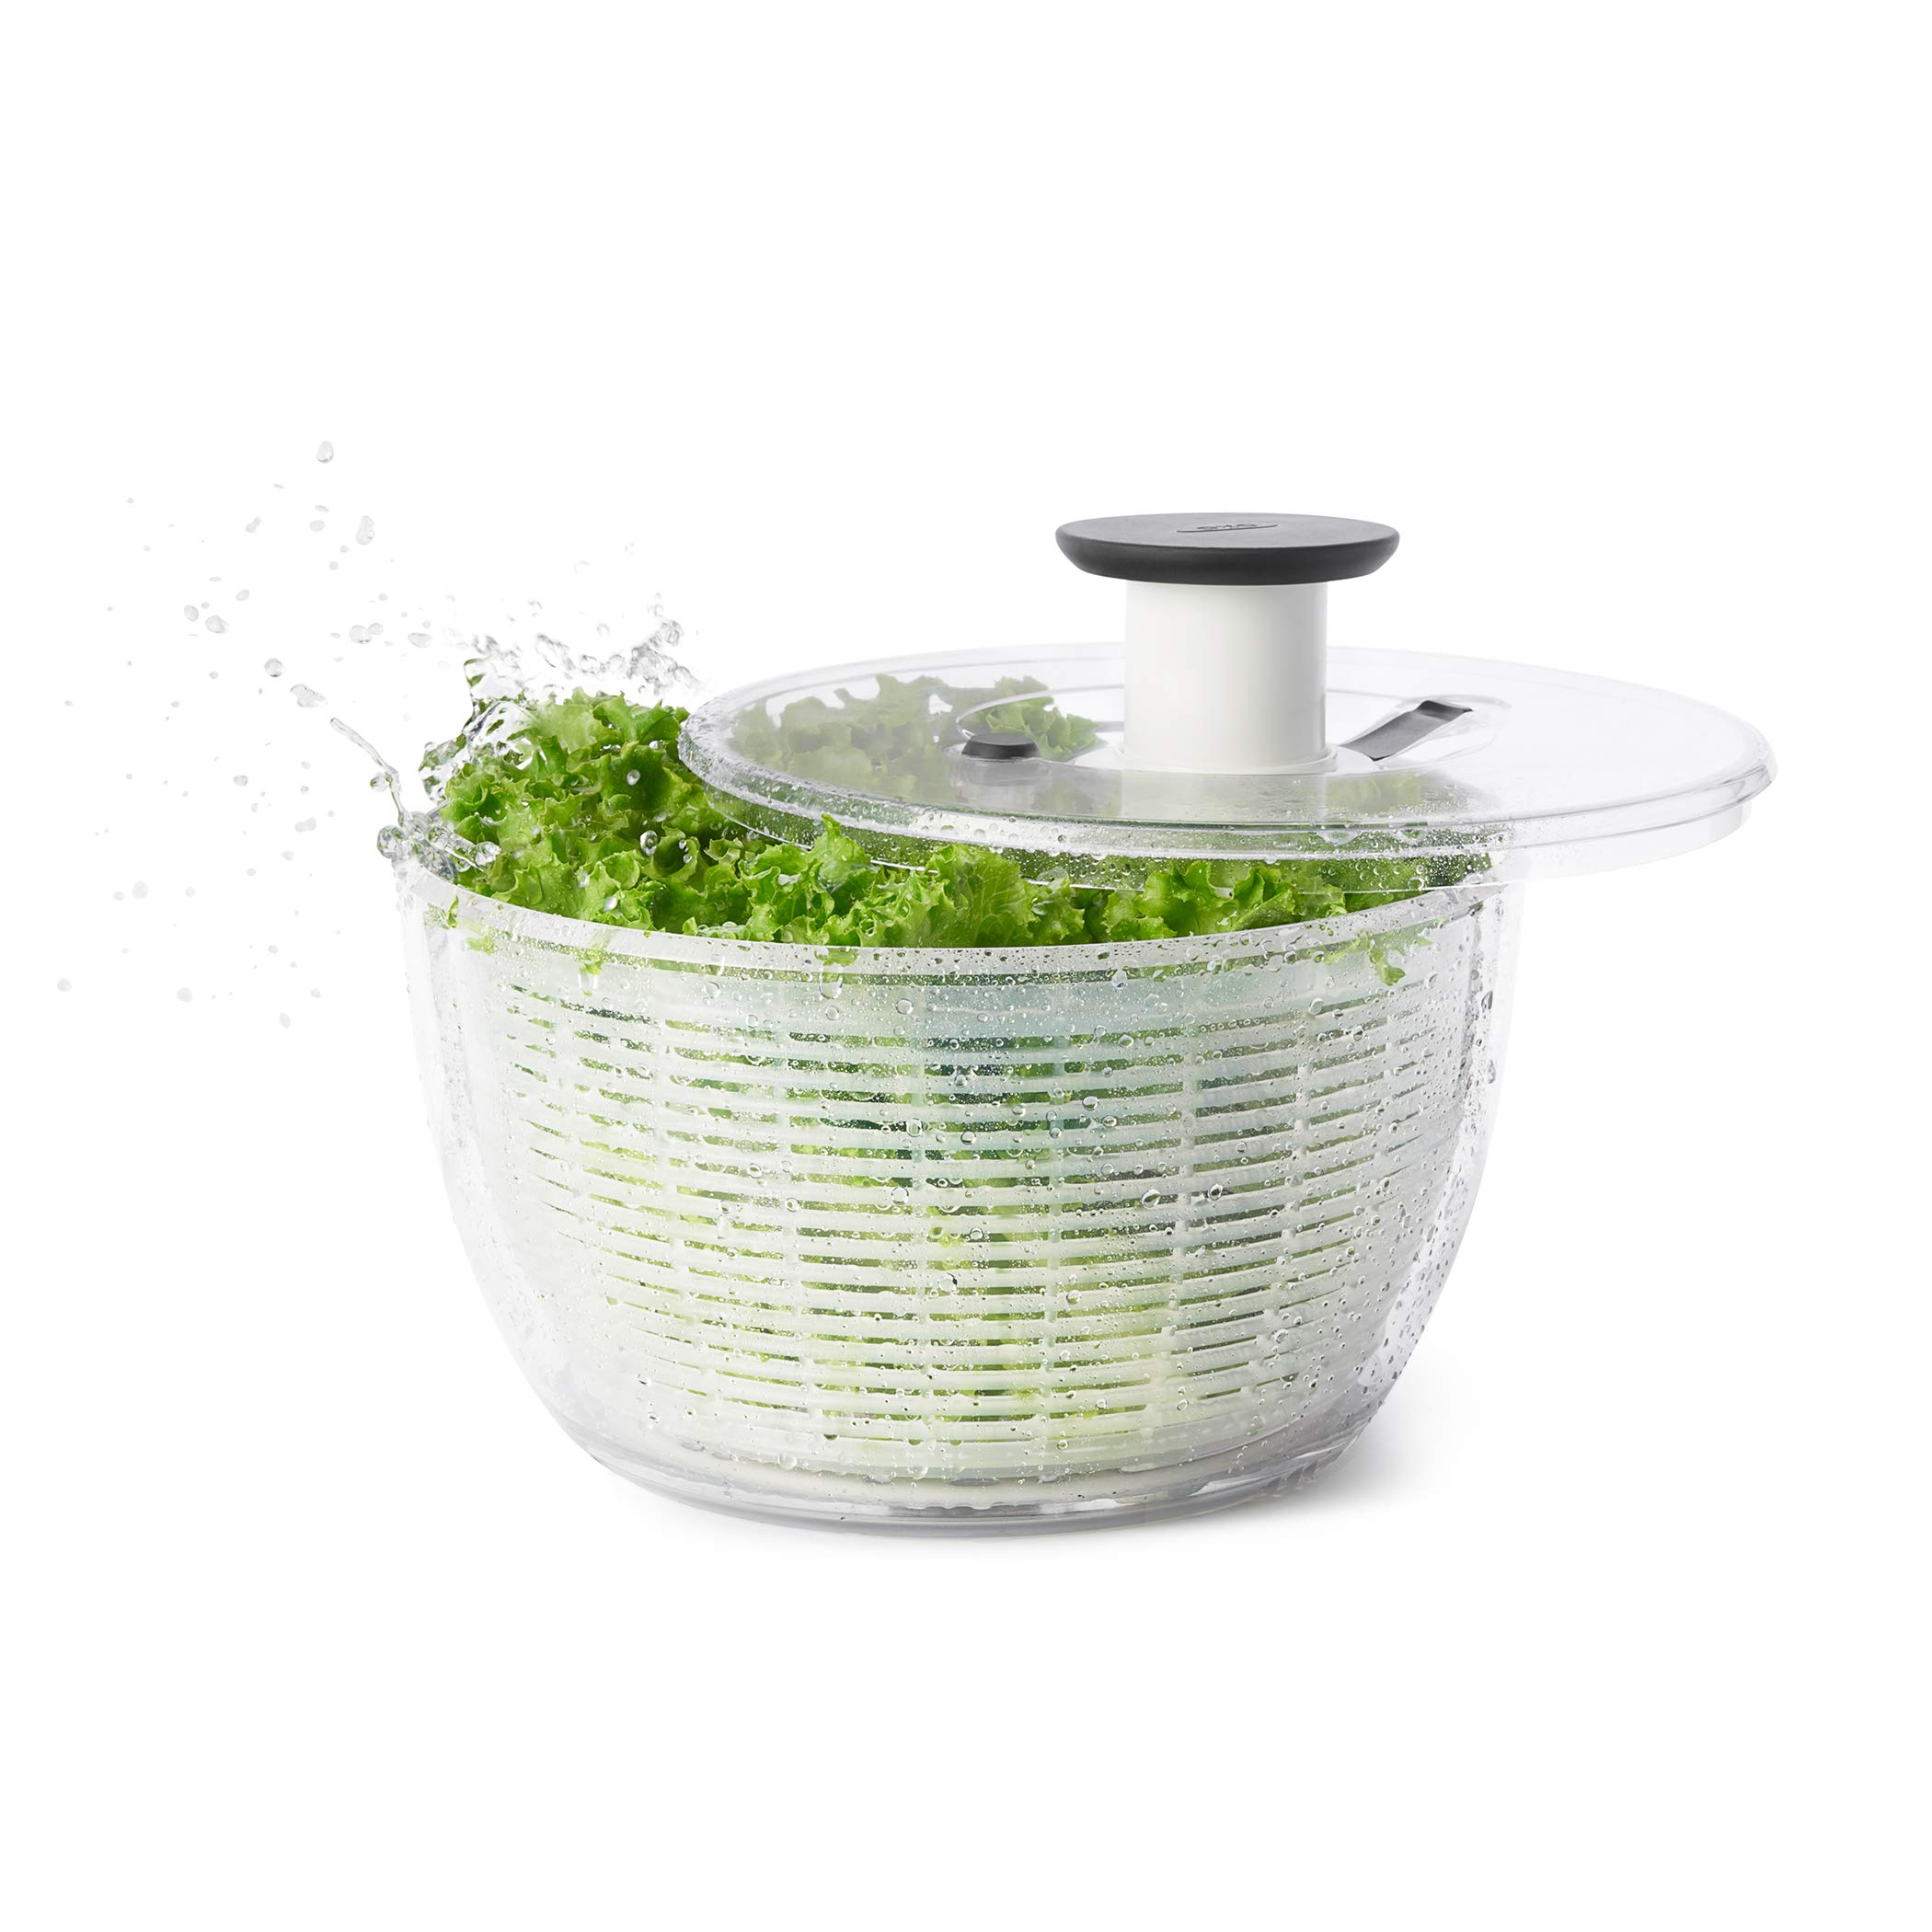 OXO Good Grips Salad Spinner, Medium, Clear by OXO